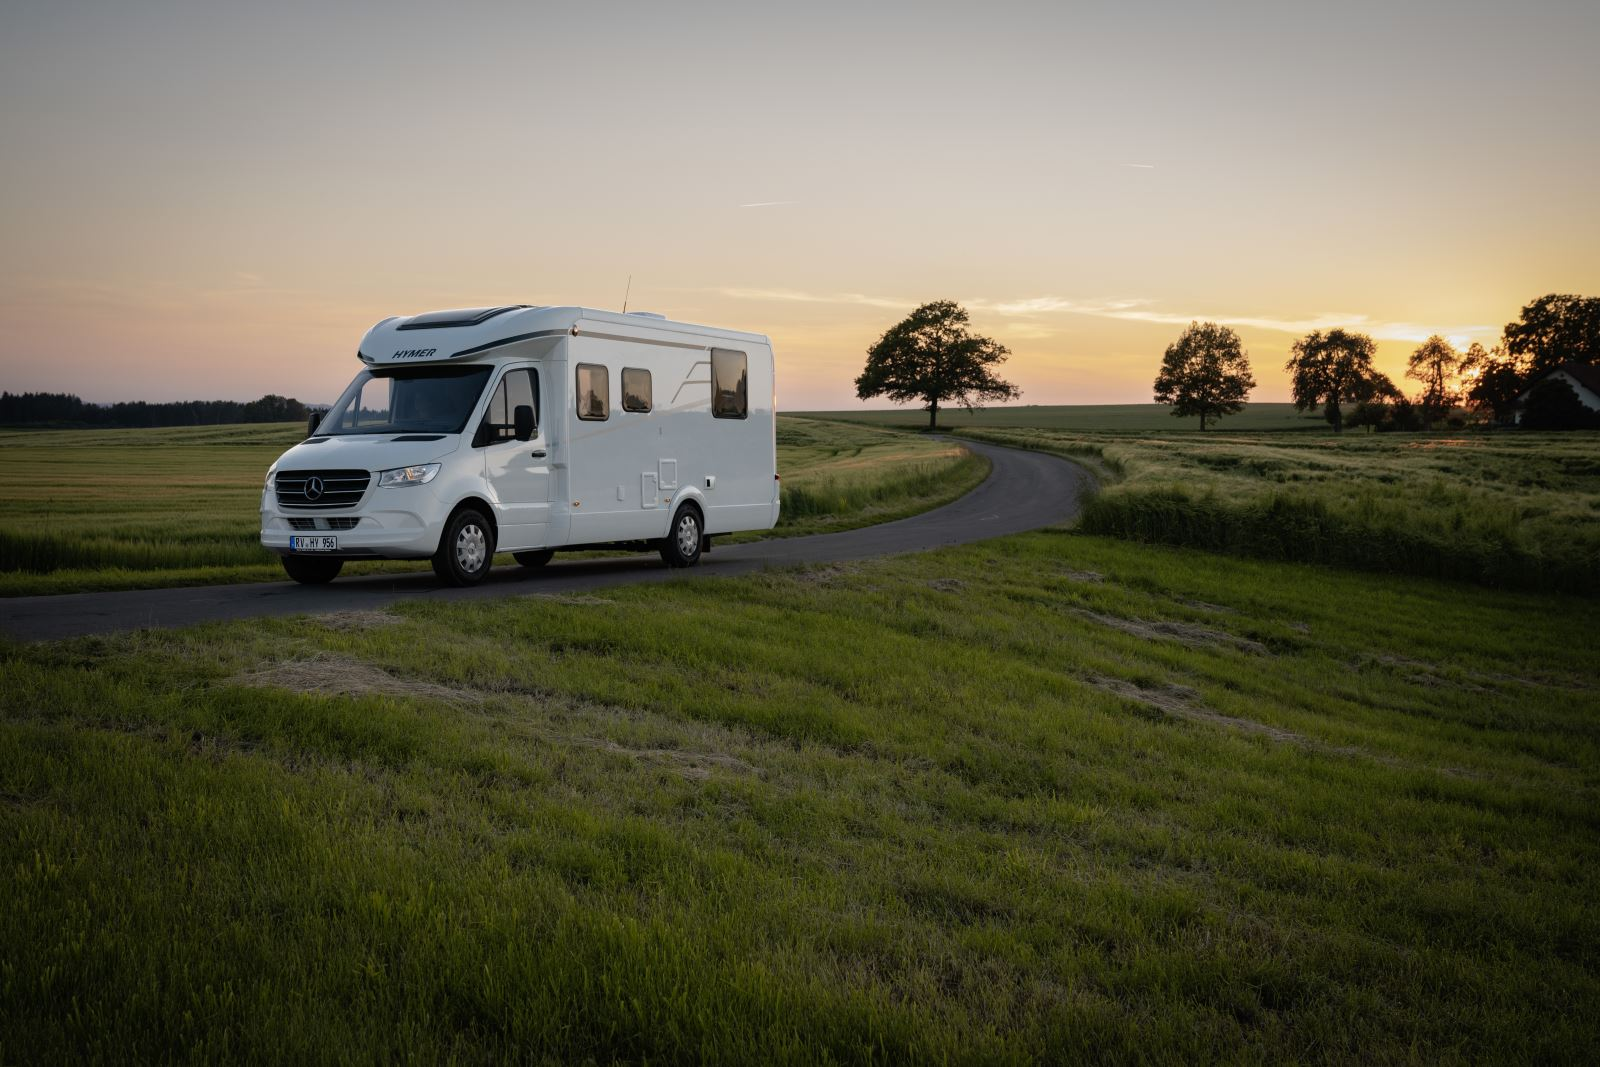 Exterior image of the Hymer T-S 695